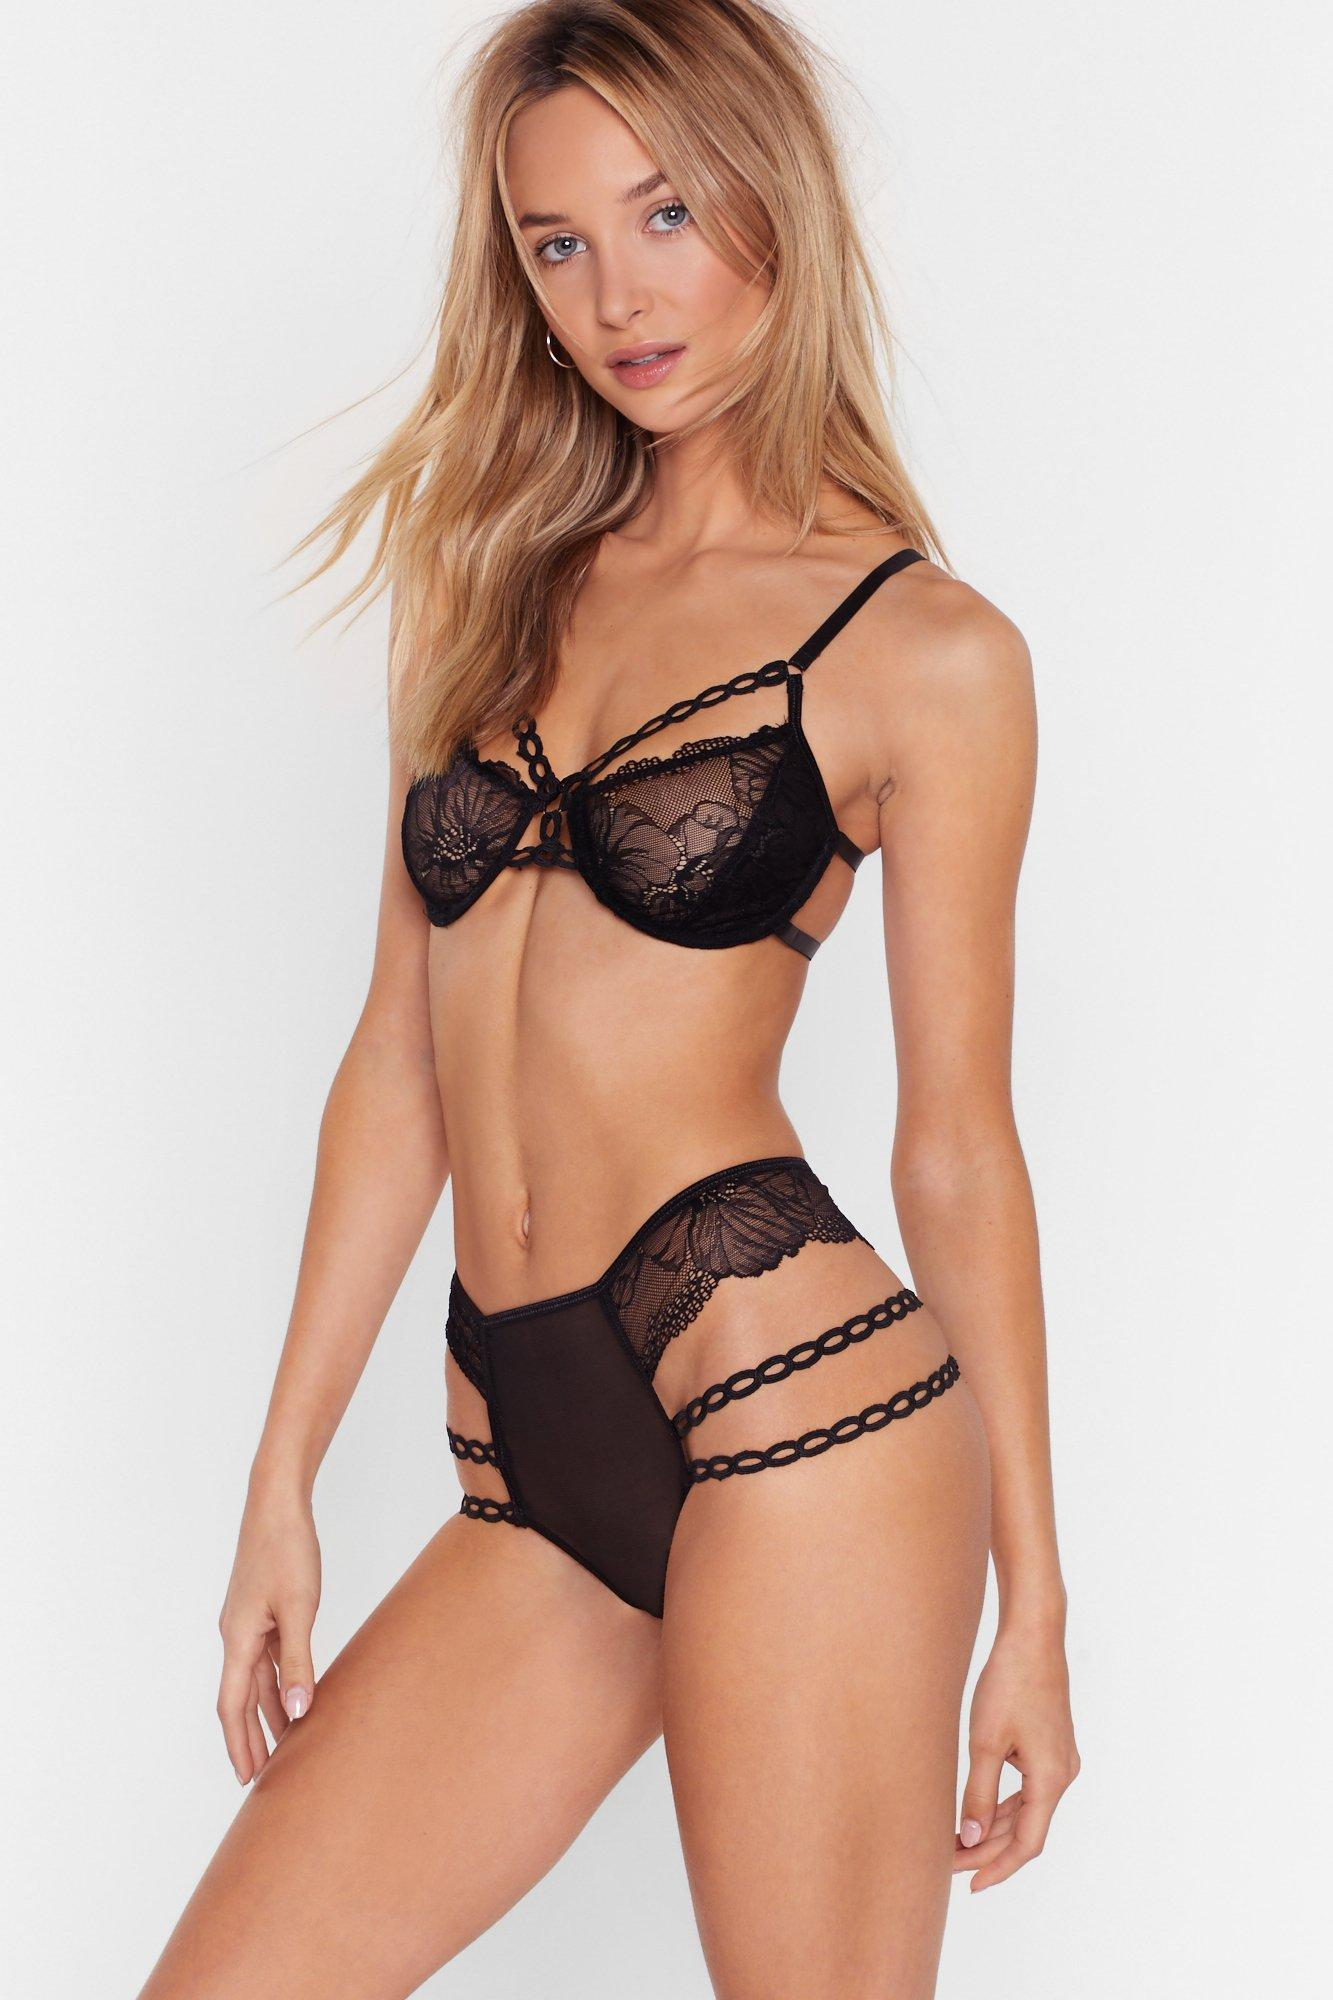 Image of Let's Grow Strappy Lace Bralette and Panty Set